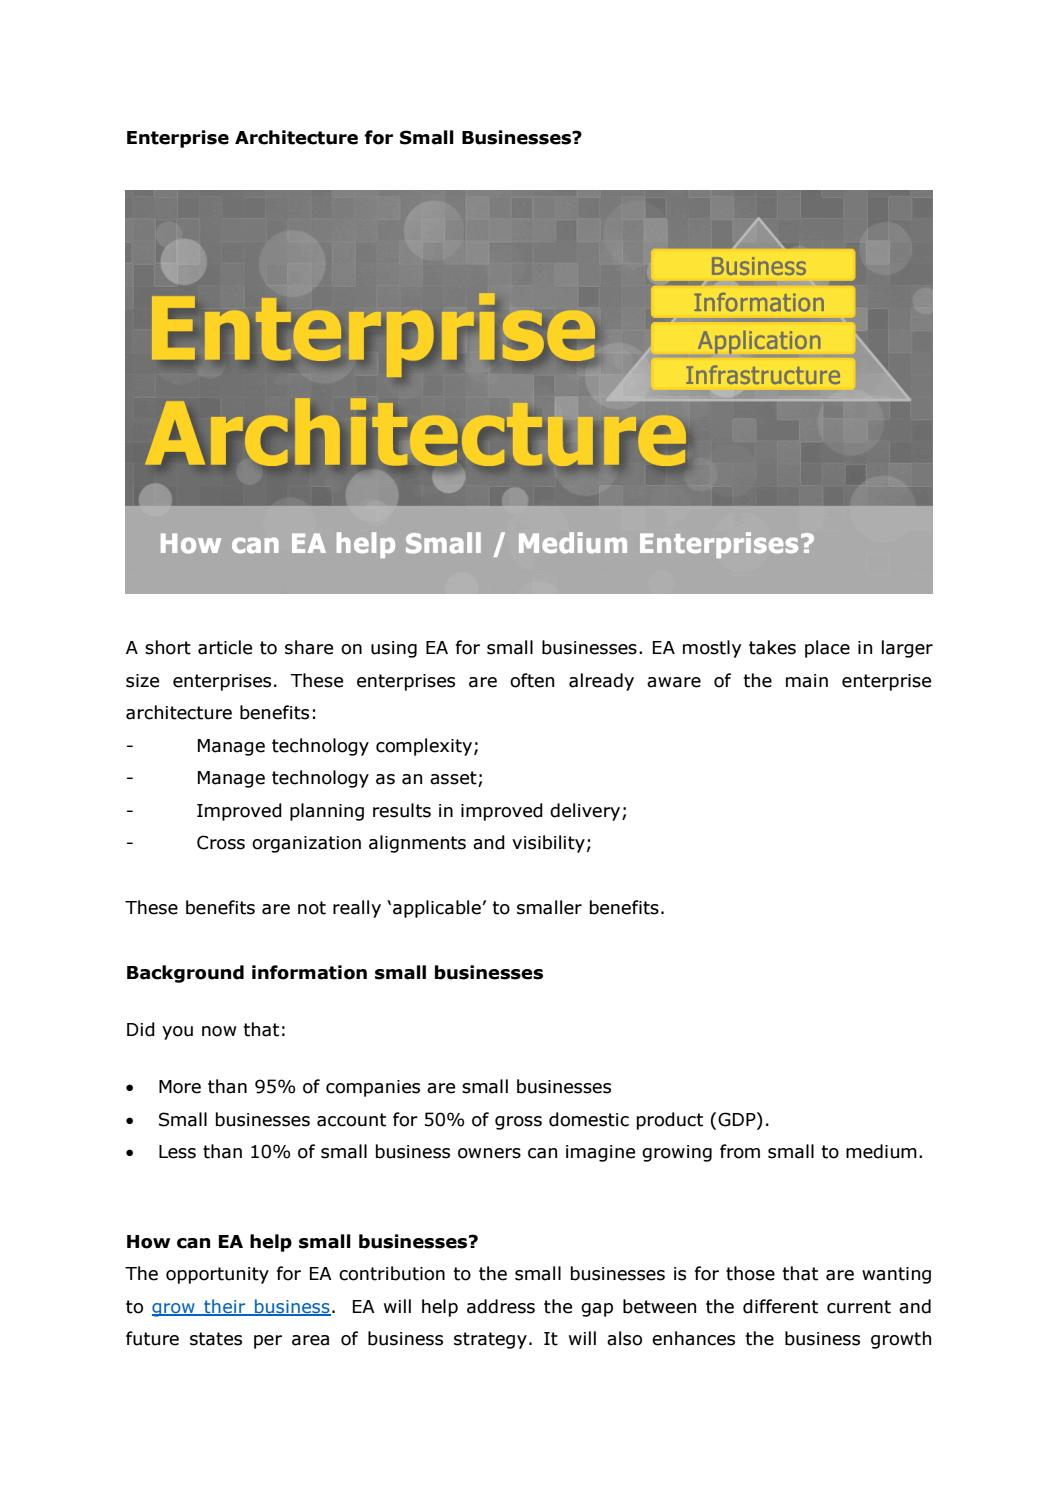 Enterprise Architecture For Small Businesses By Eacomposer   Issuu